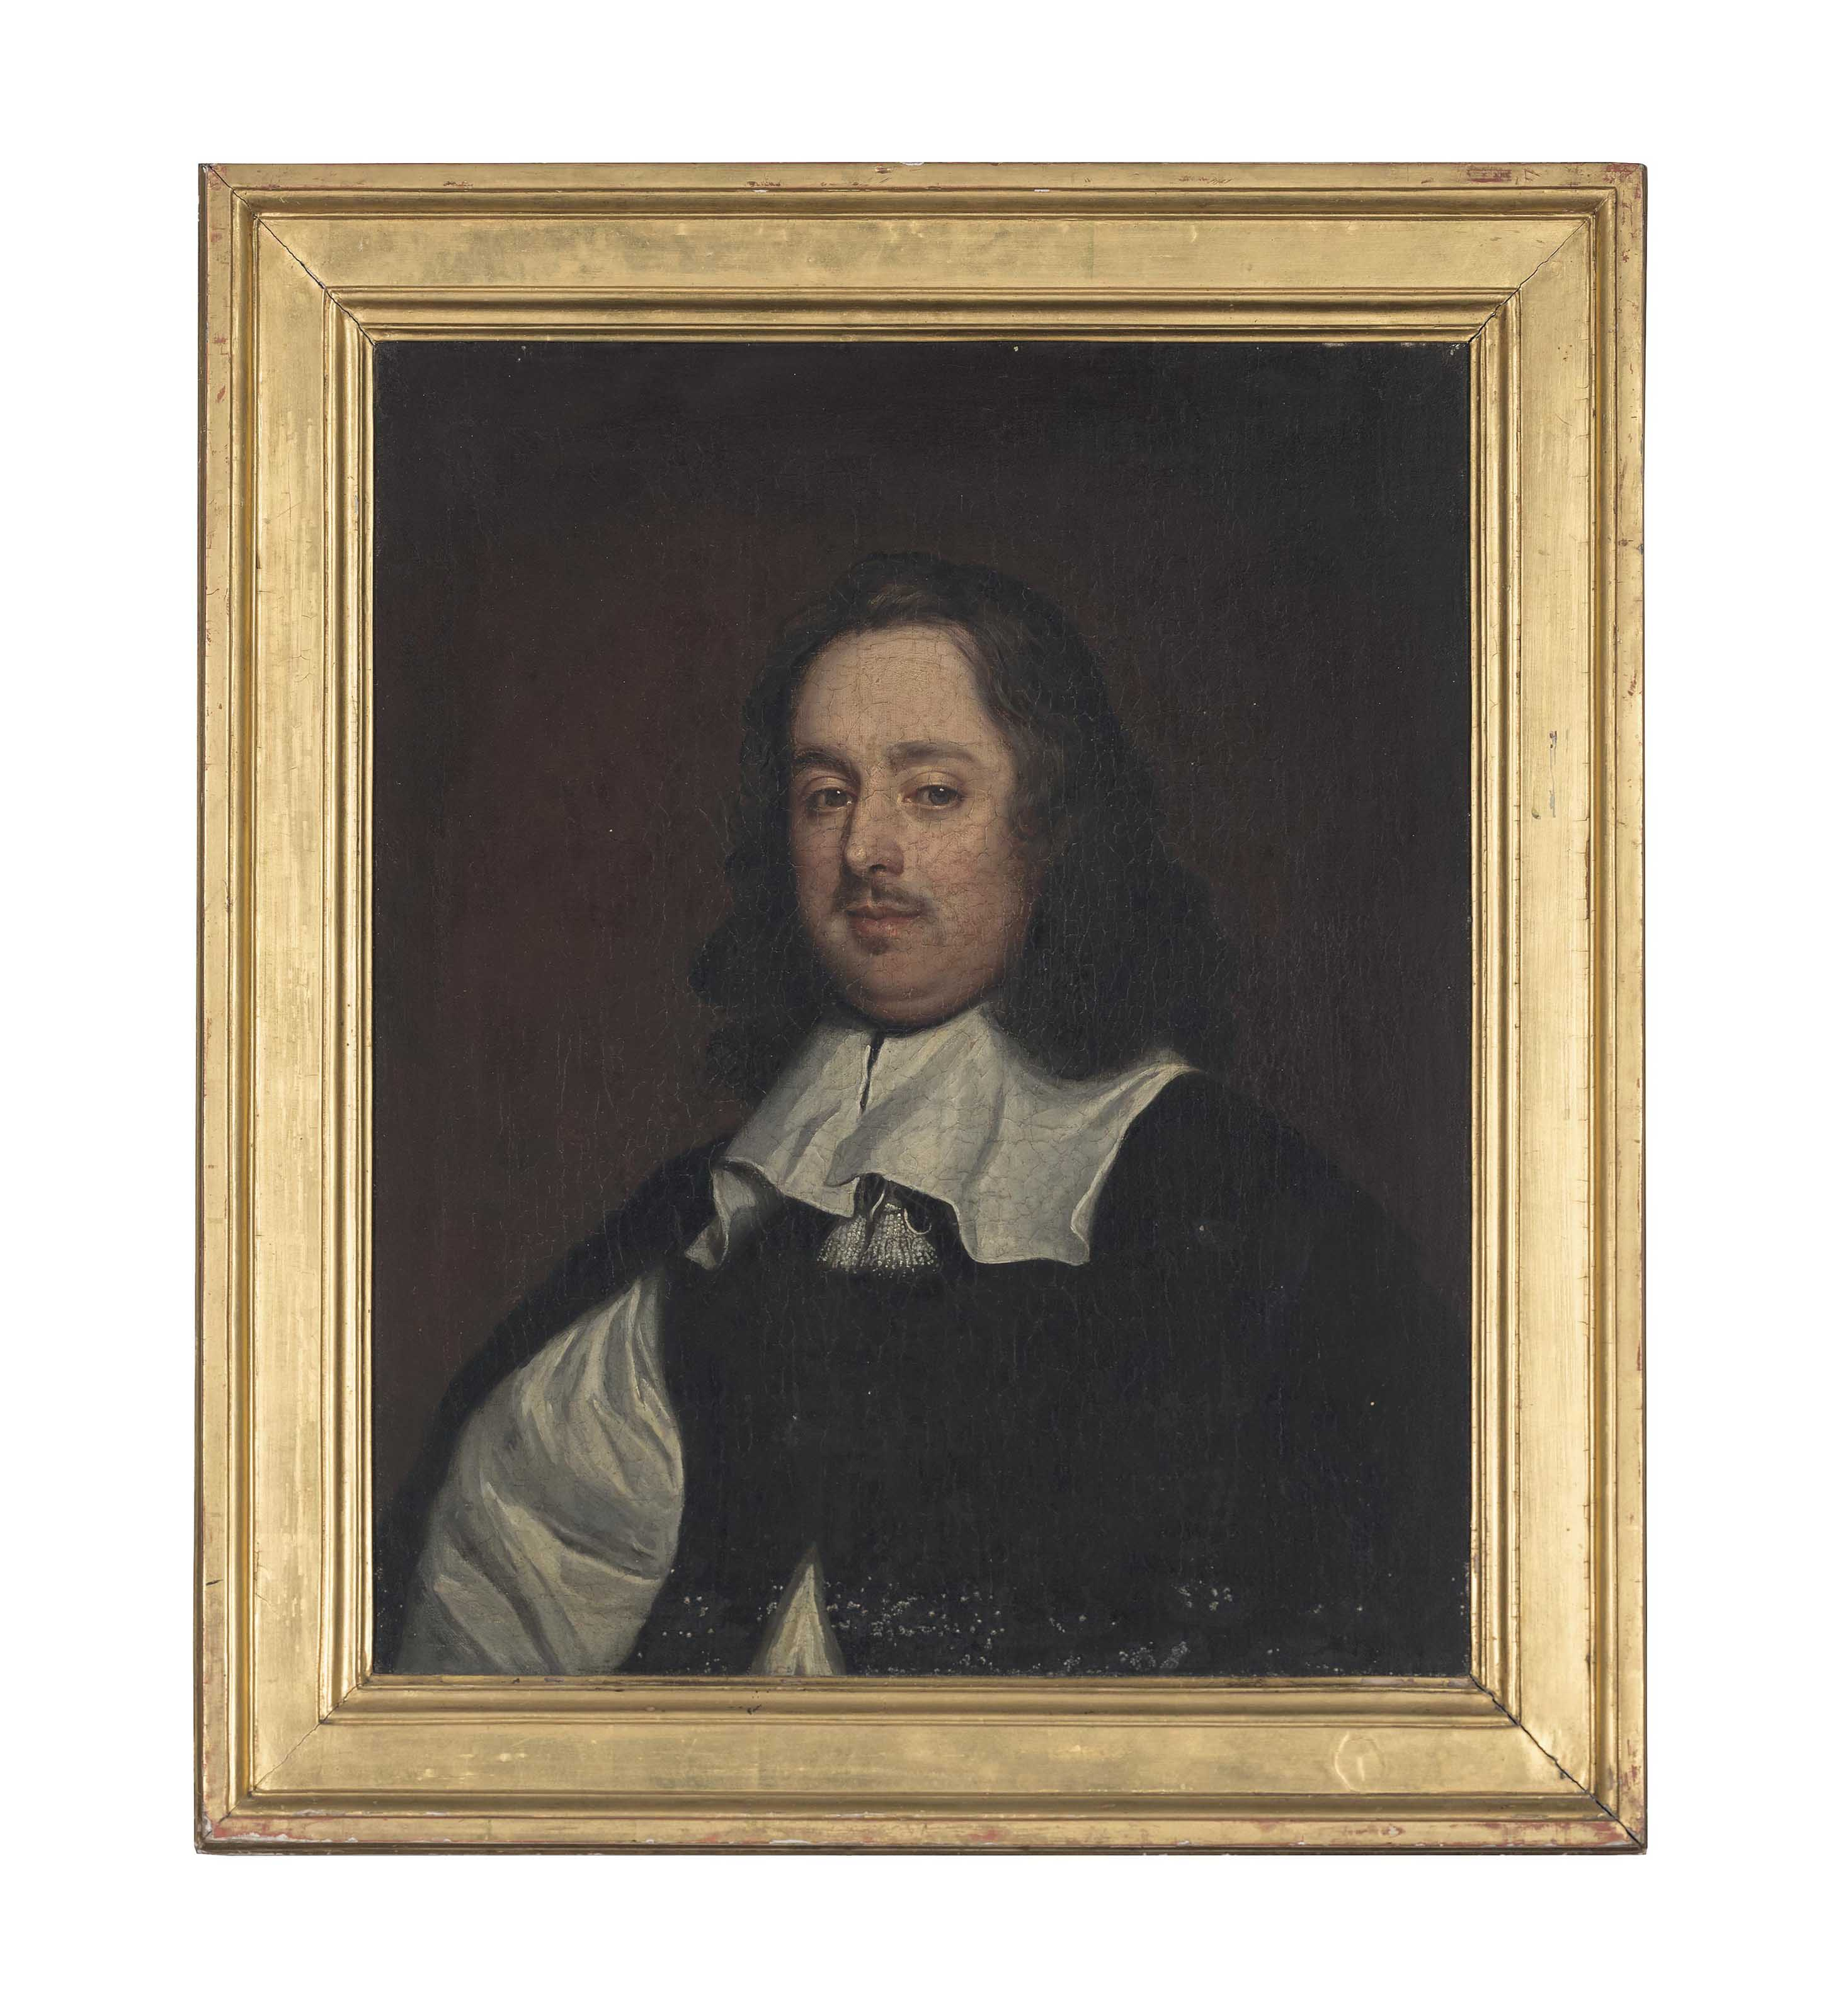 Attributed to John Hayls (Lond